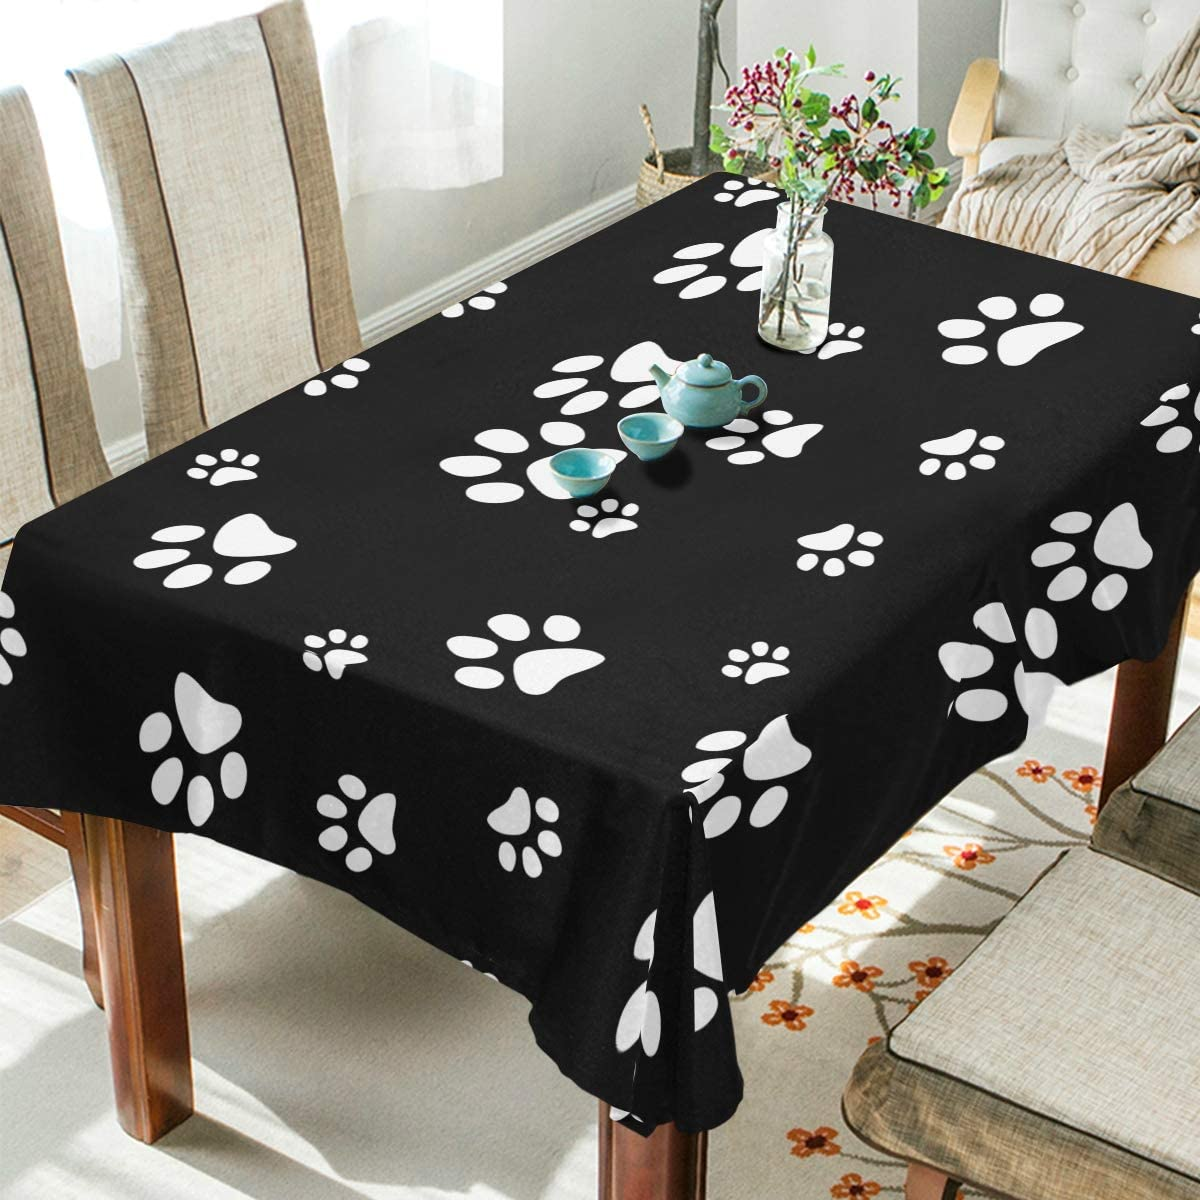 WOZO Rectangular Cute Puppy Pug Dog Paw Print Tablecloth Table Cloth Cover for Home Decor Dinner Kitchen Party Picnic Wedding Halloween Christmas 54x72 inch